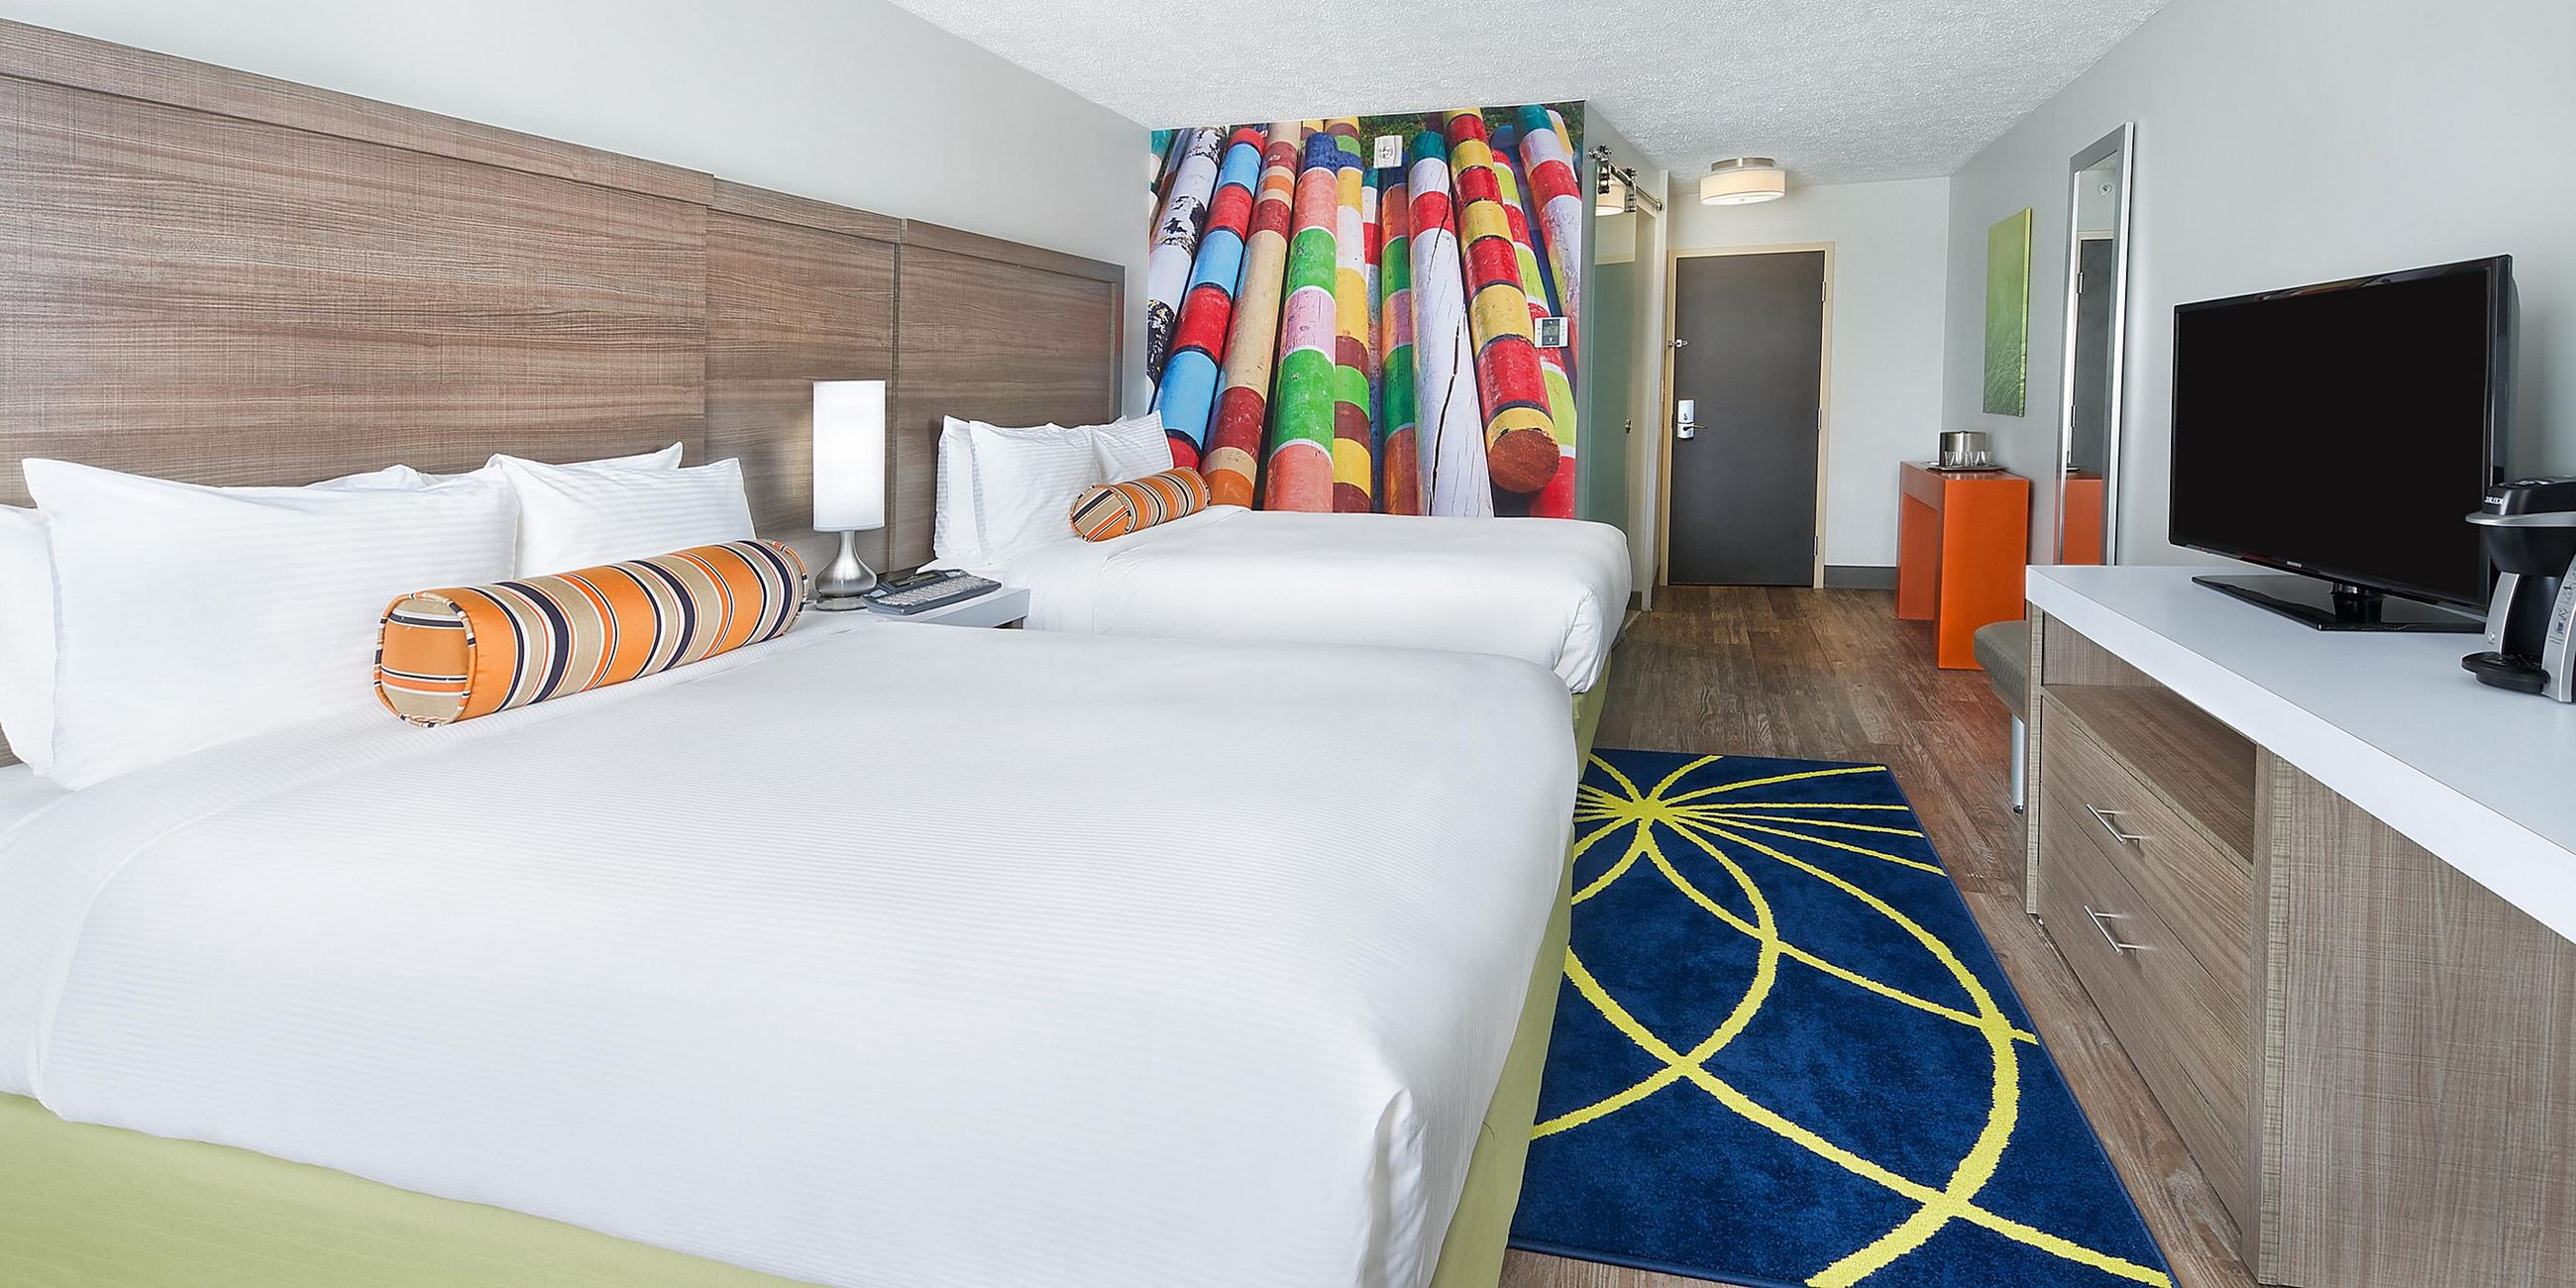 Hotel INDIGO room with 2 double beds